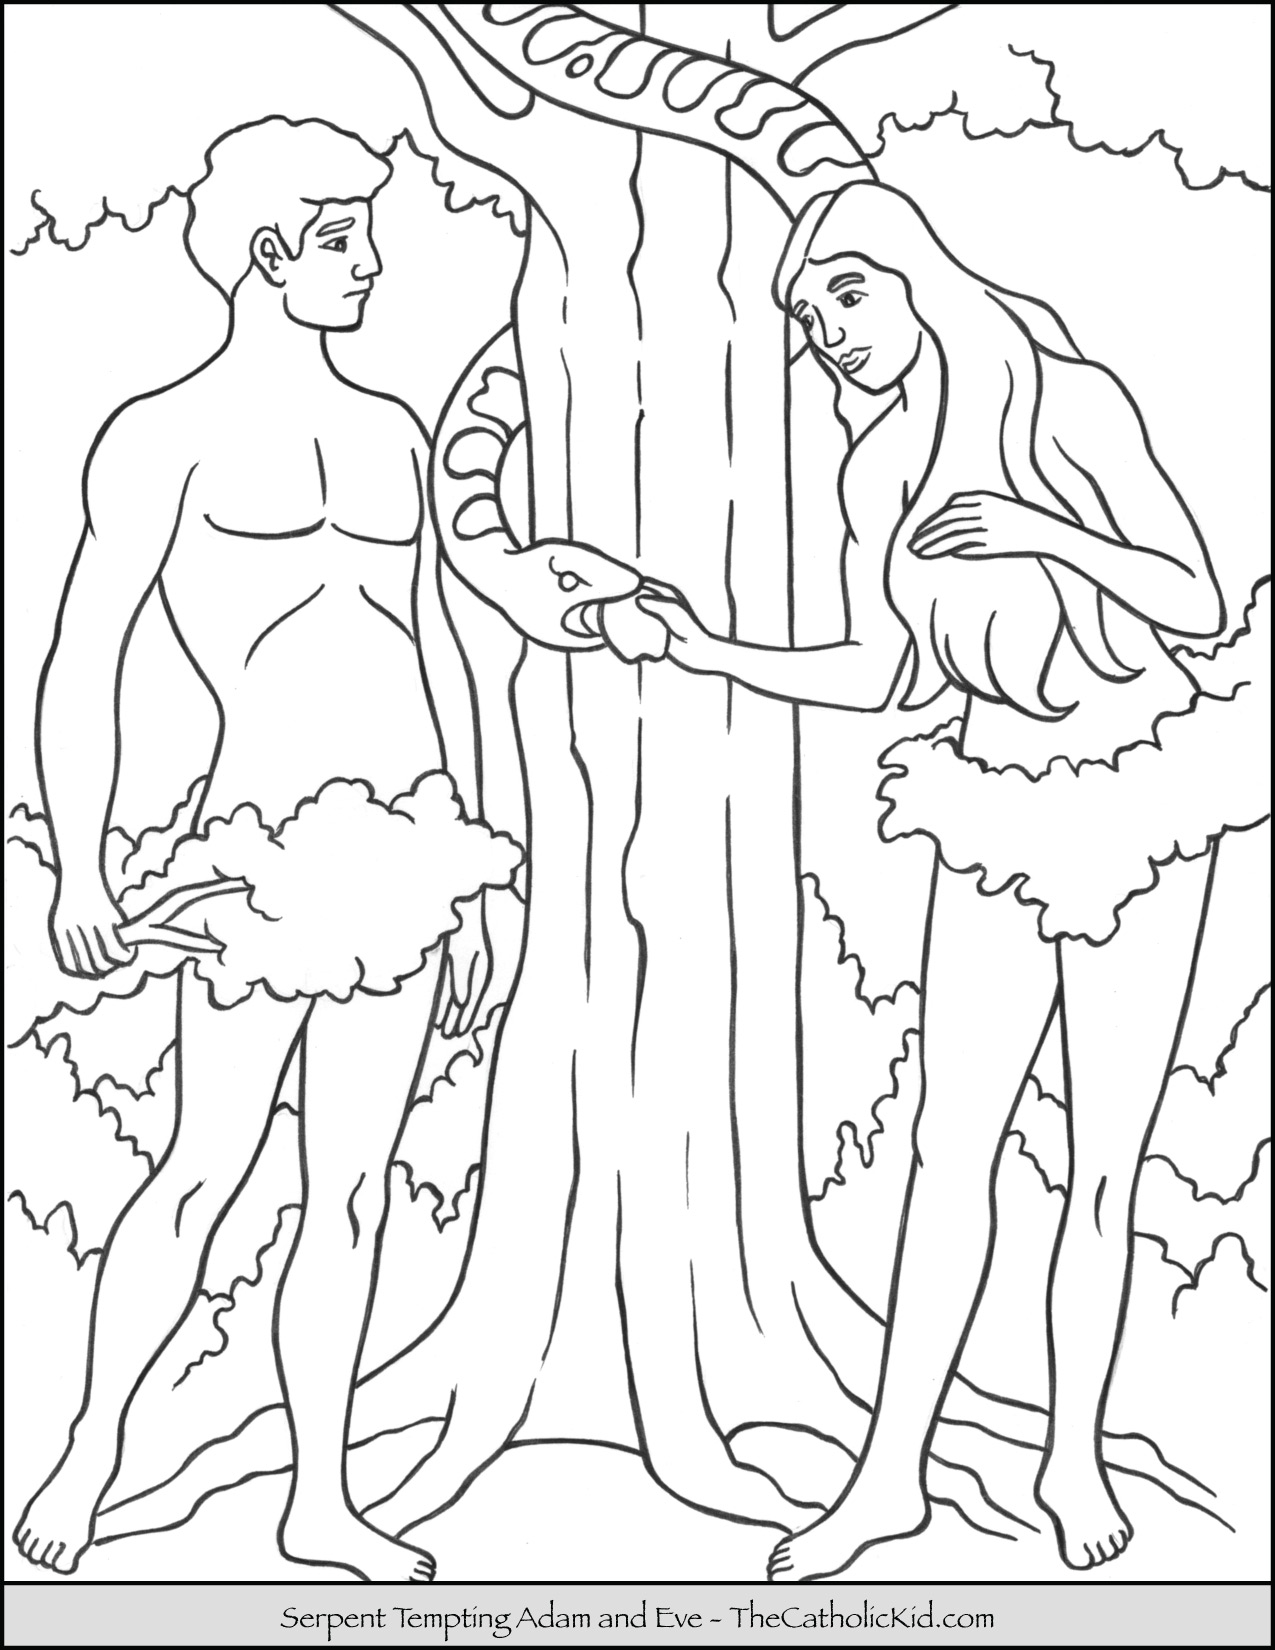 Serpent with Adam and Eve